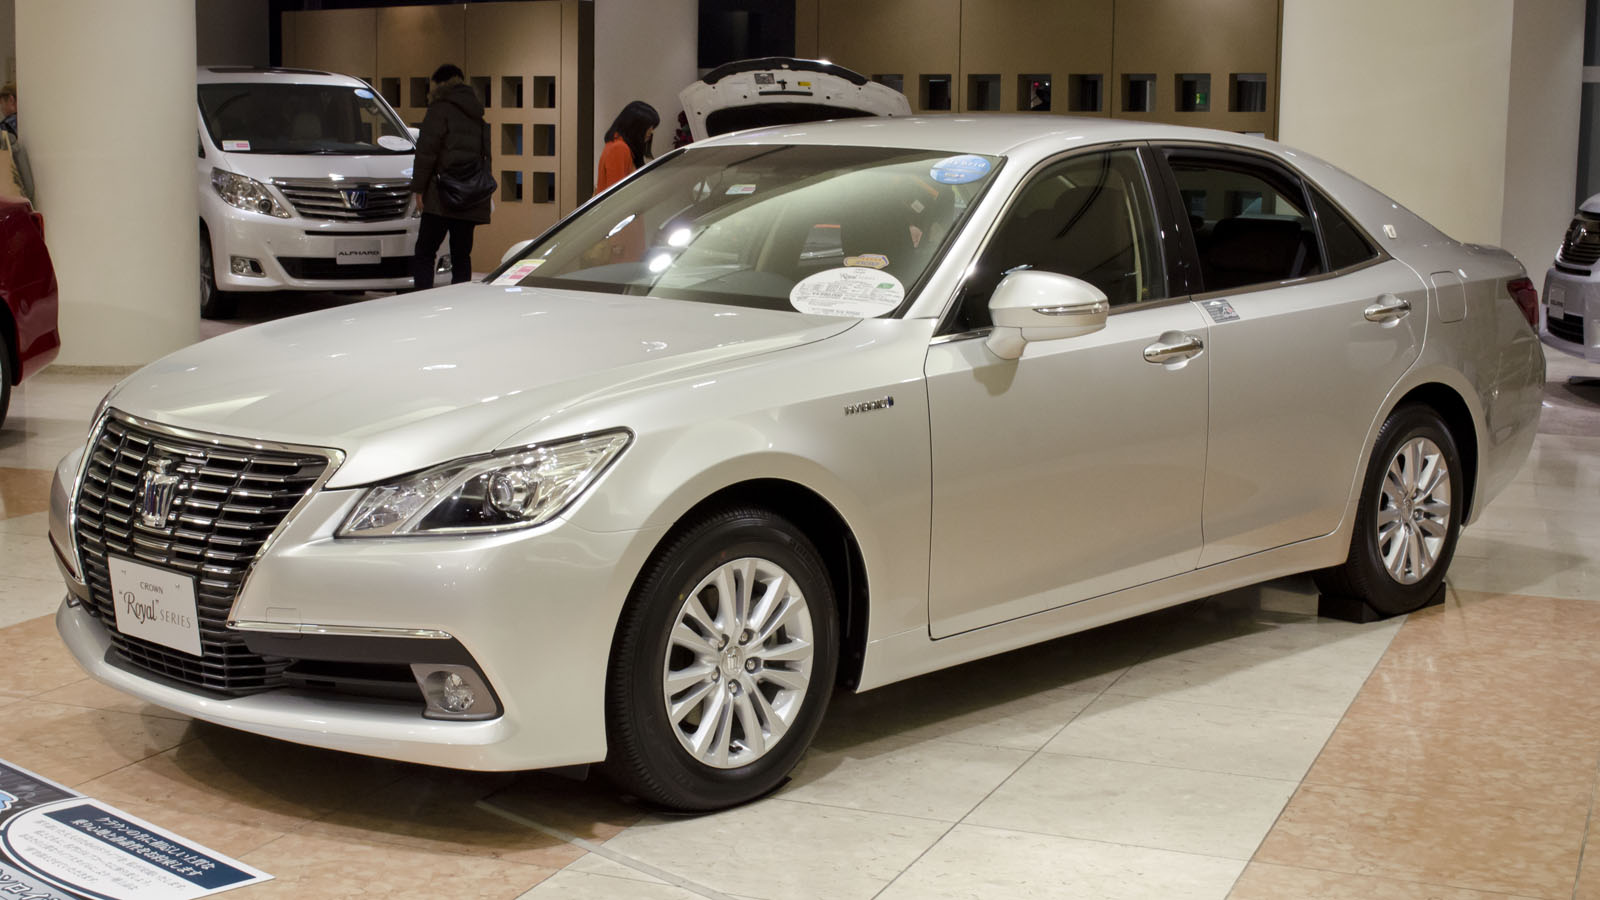 Toyota crown photo - 10